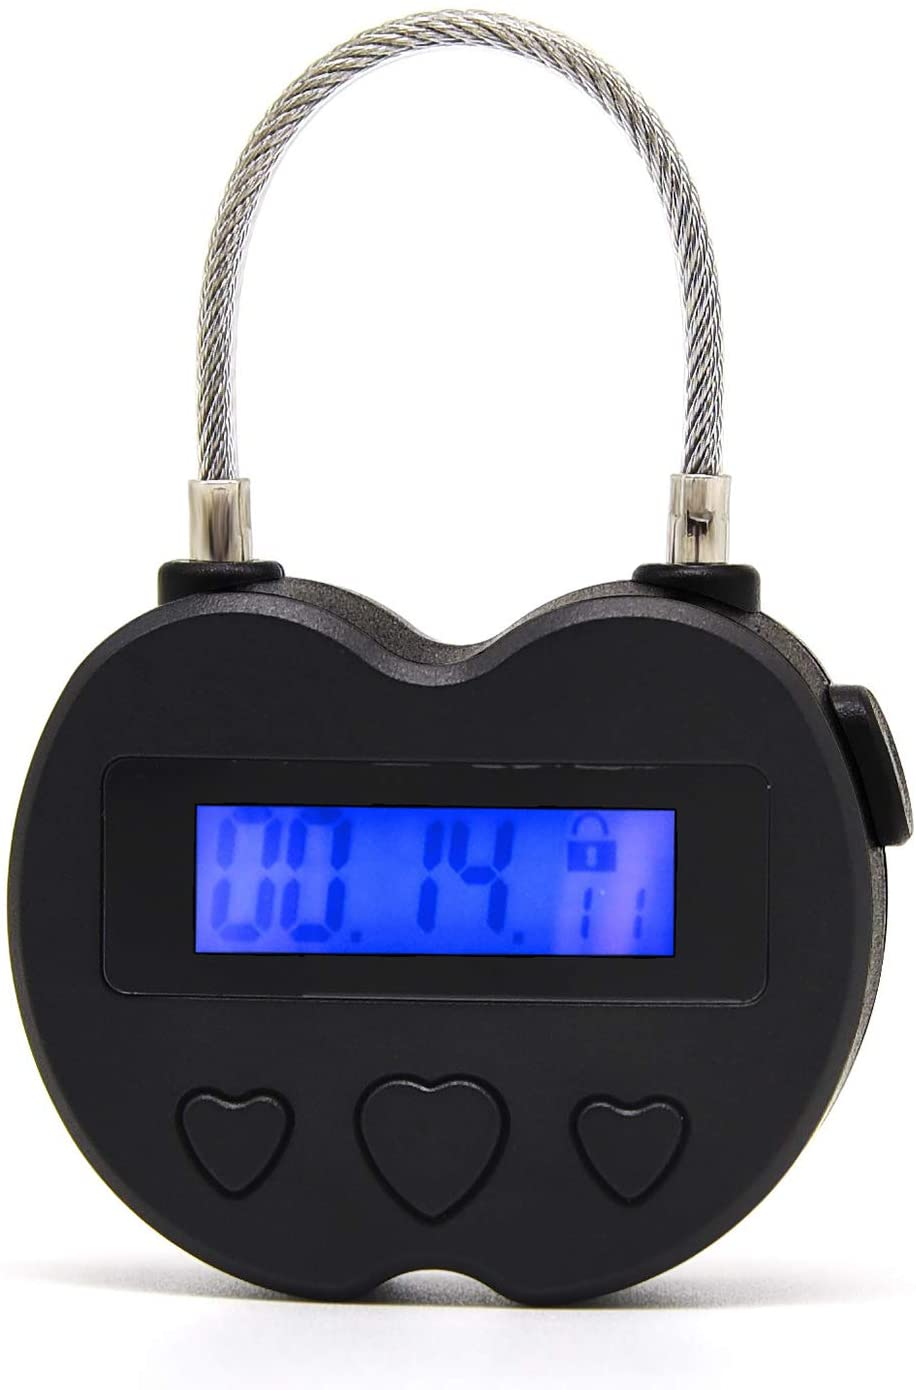 Time Lock LCD Display Time Lock Multi-Function Electronic Timer, USB Rechargeable Timer Padlock (Black)